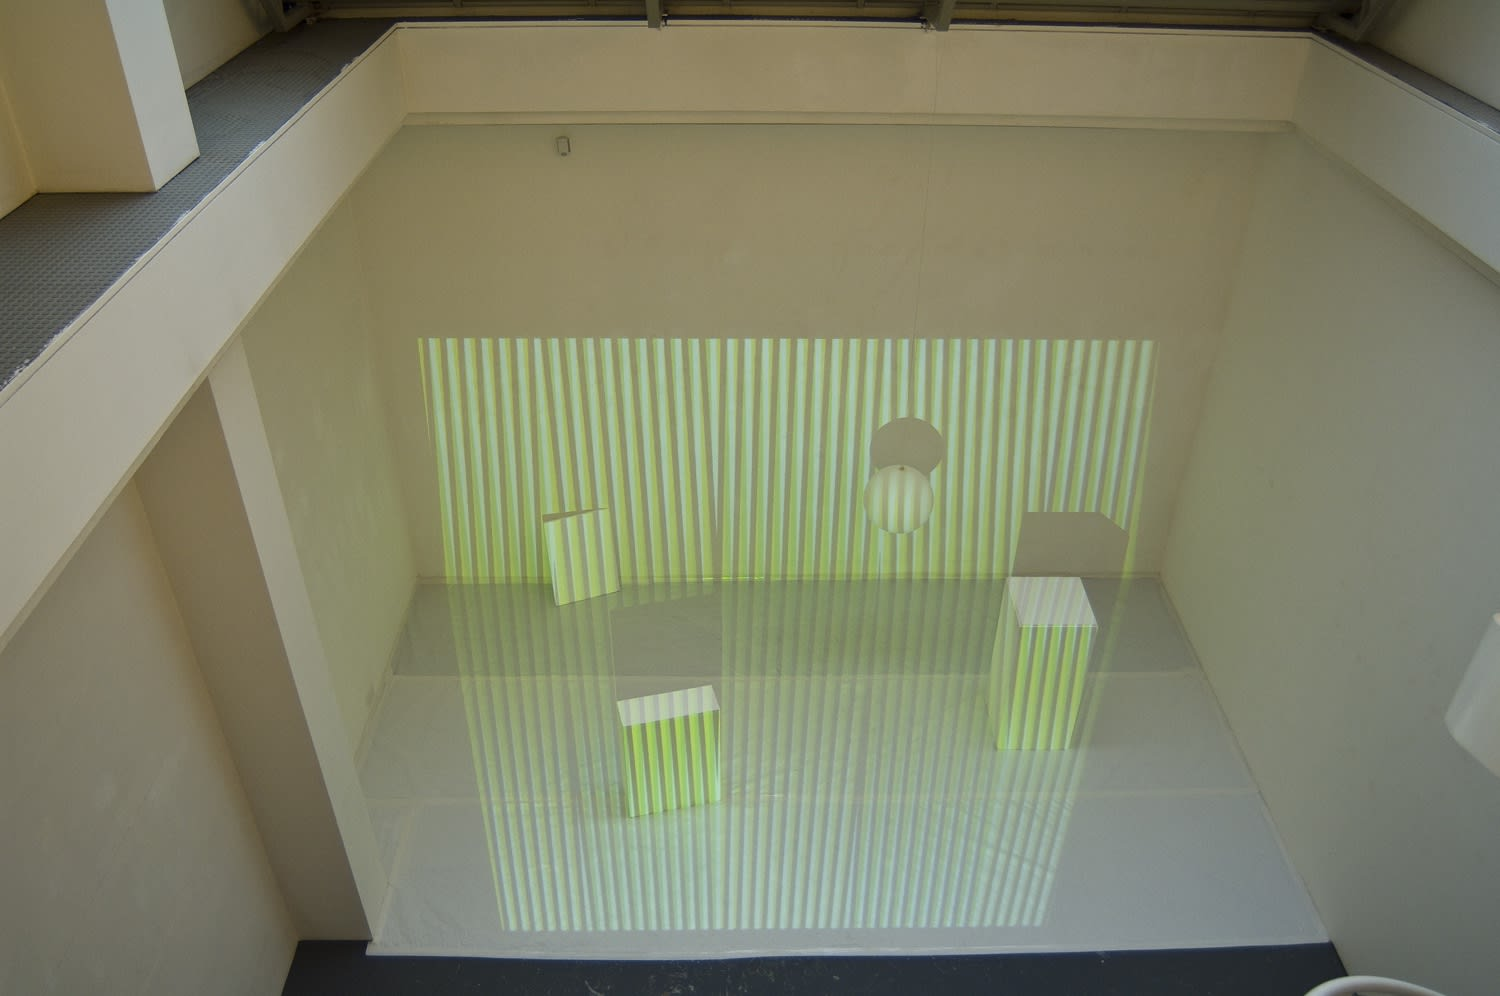 "<span class=""link fancybox-details-link""><a href=""/exhibitions/92/works/image_standalone293/"">View Detail Page</a></span><p>CARLOS CRUZ-DIEZ 